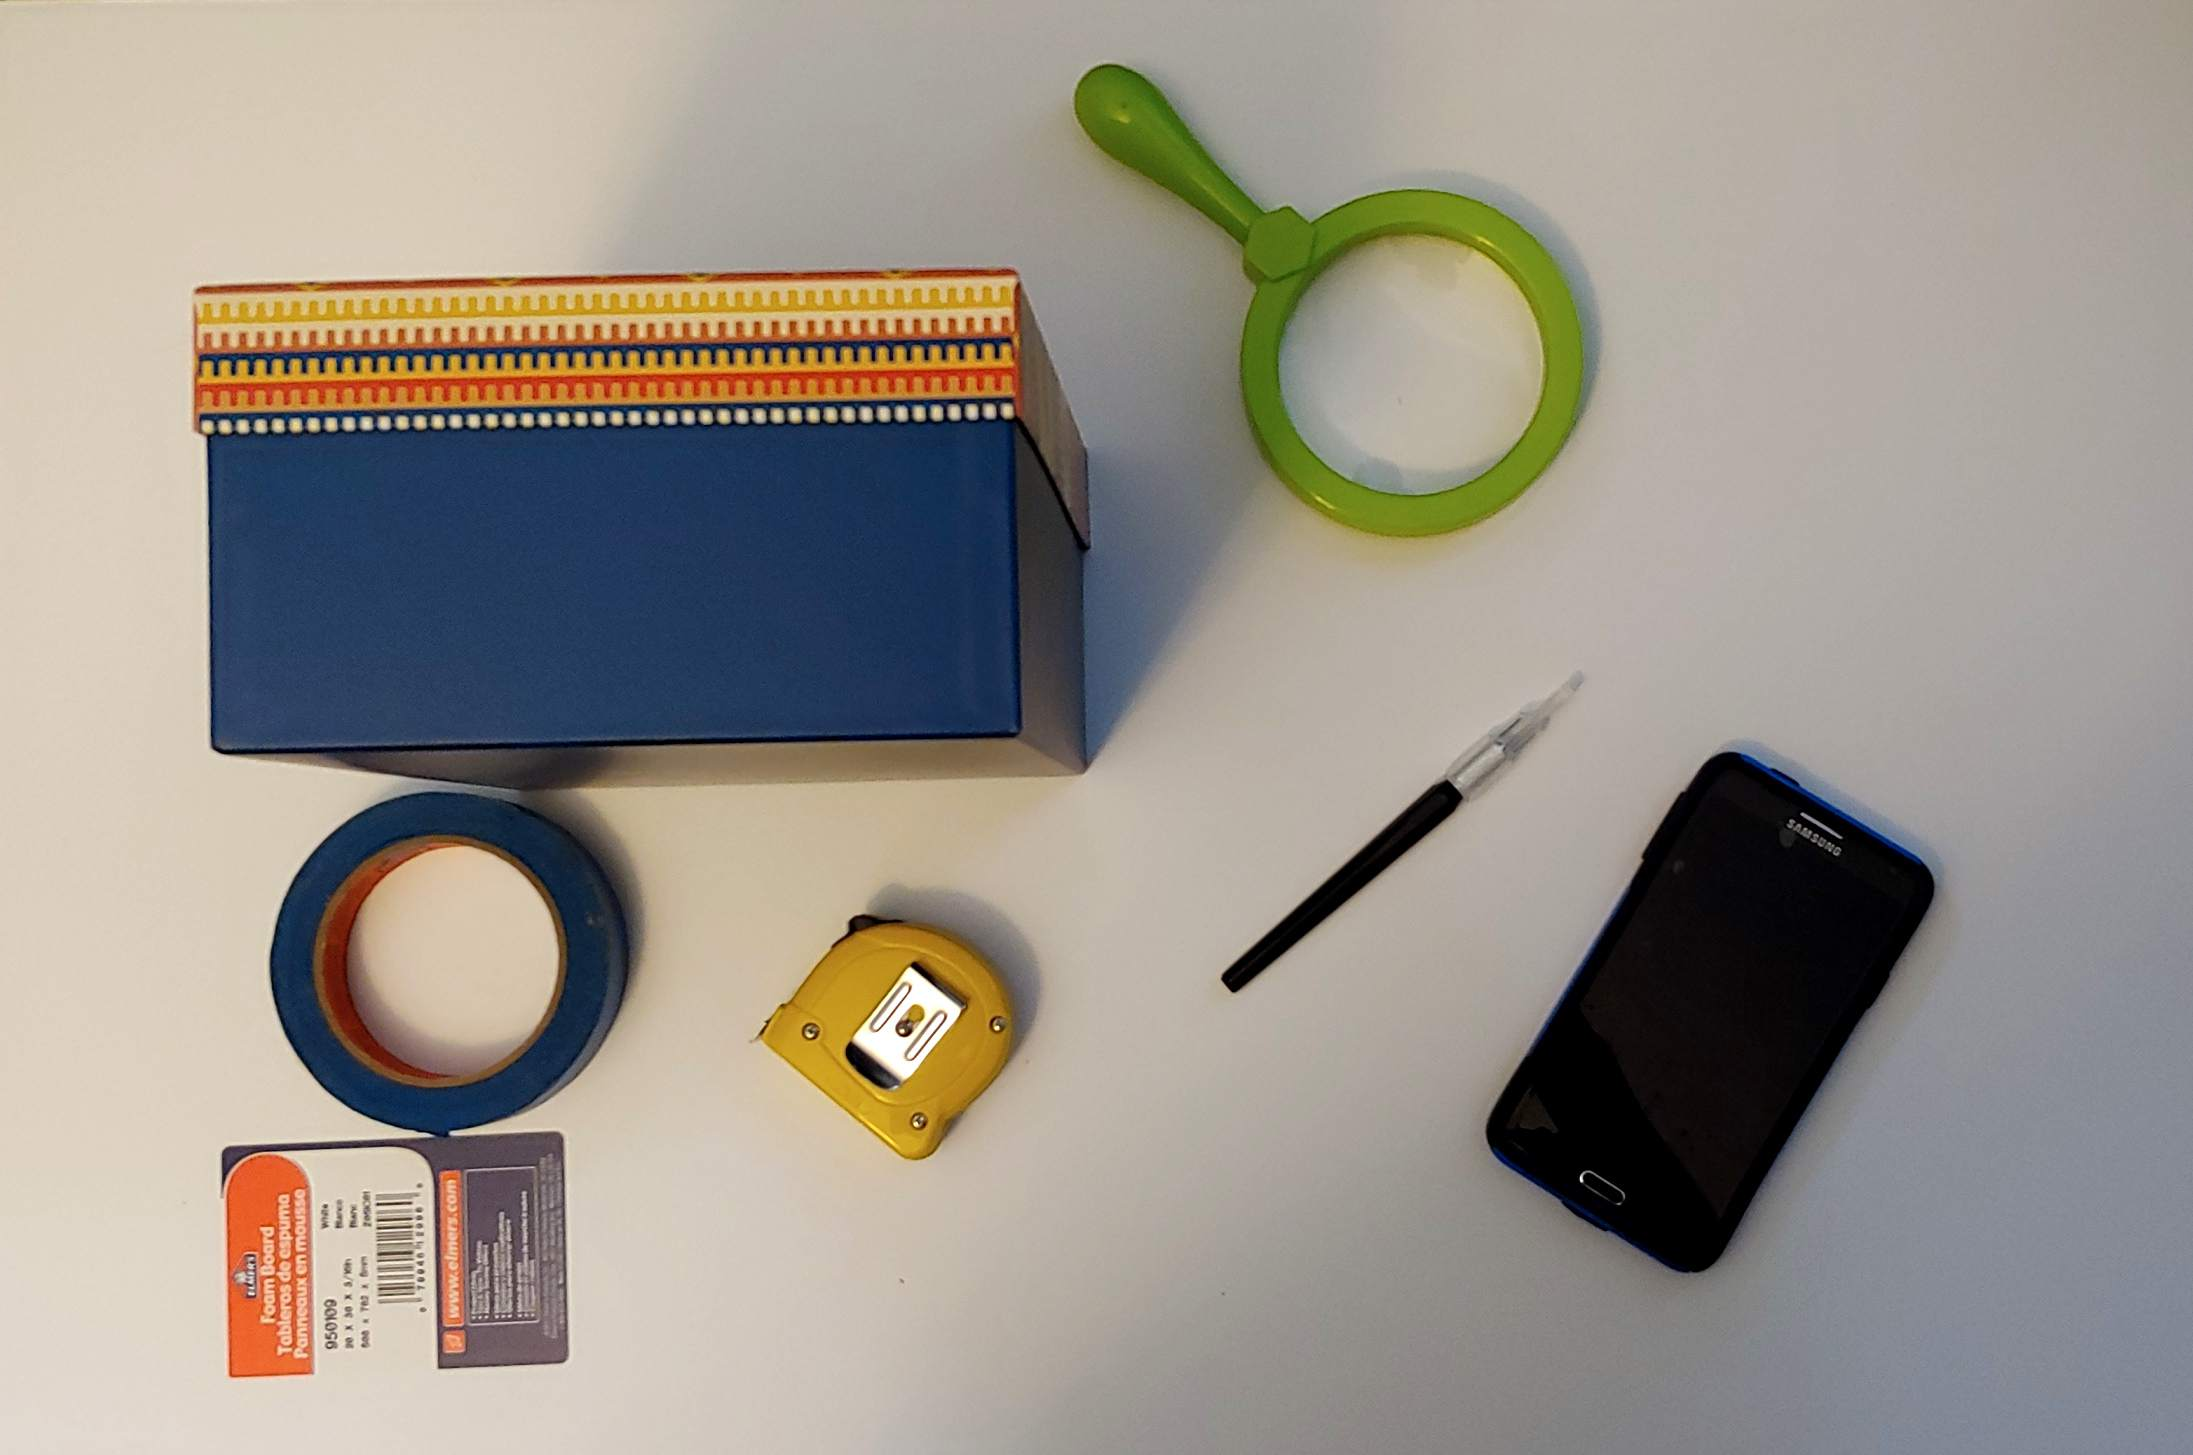 How To Make A Diy Projector For Your Smartphone